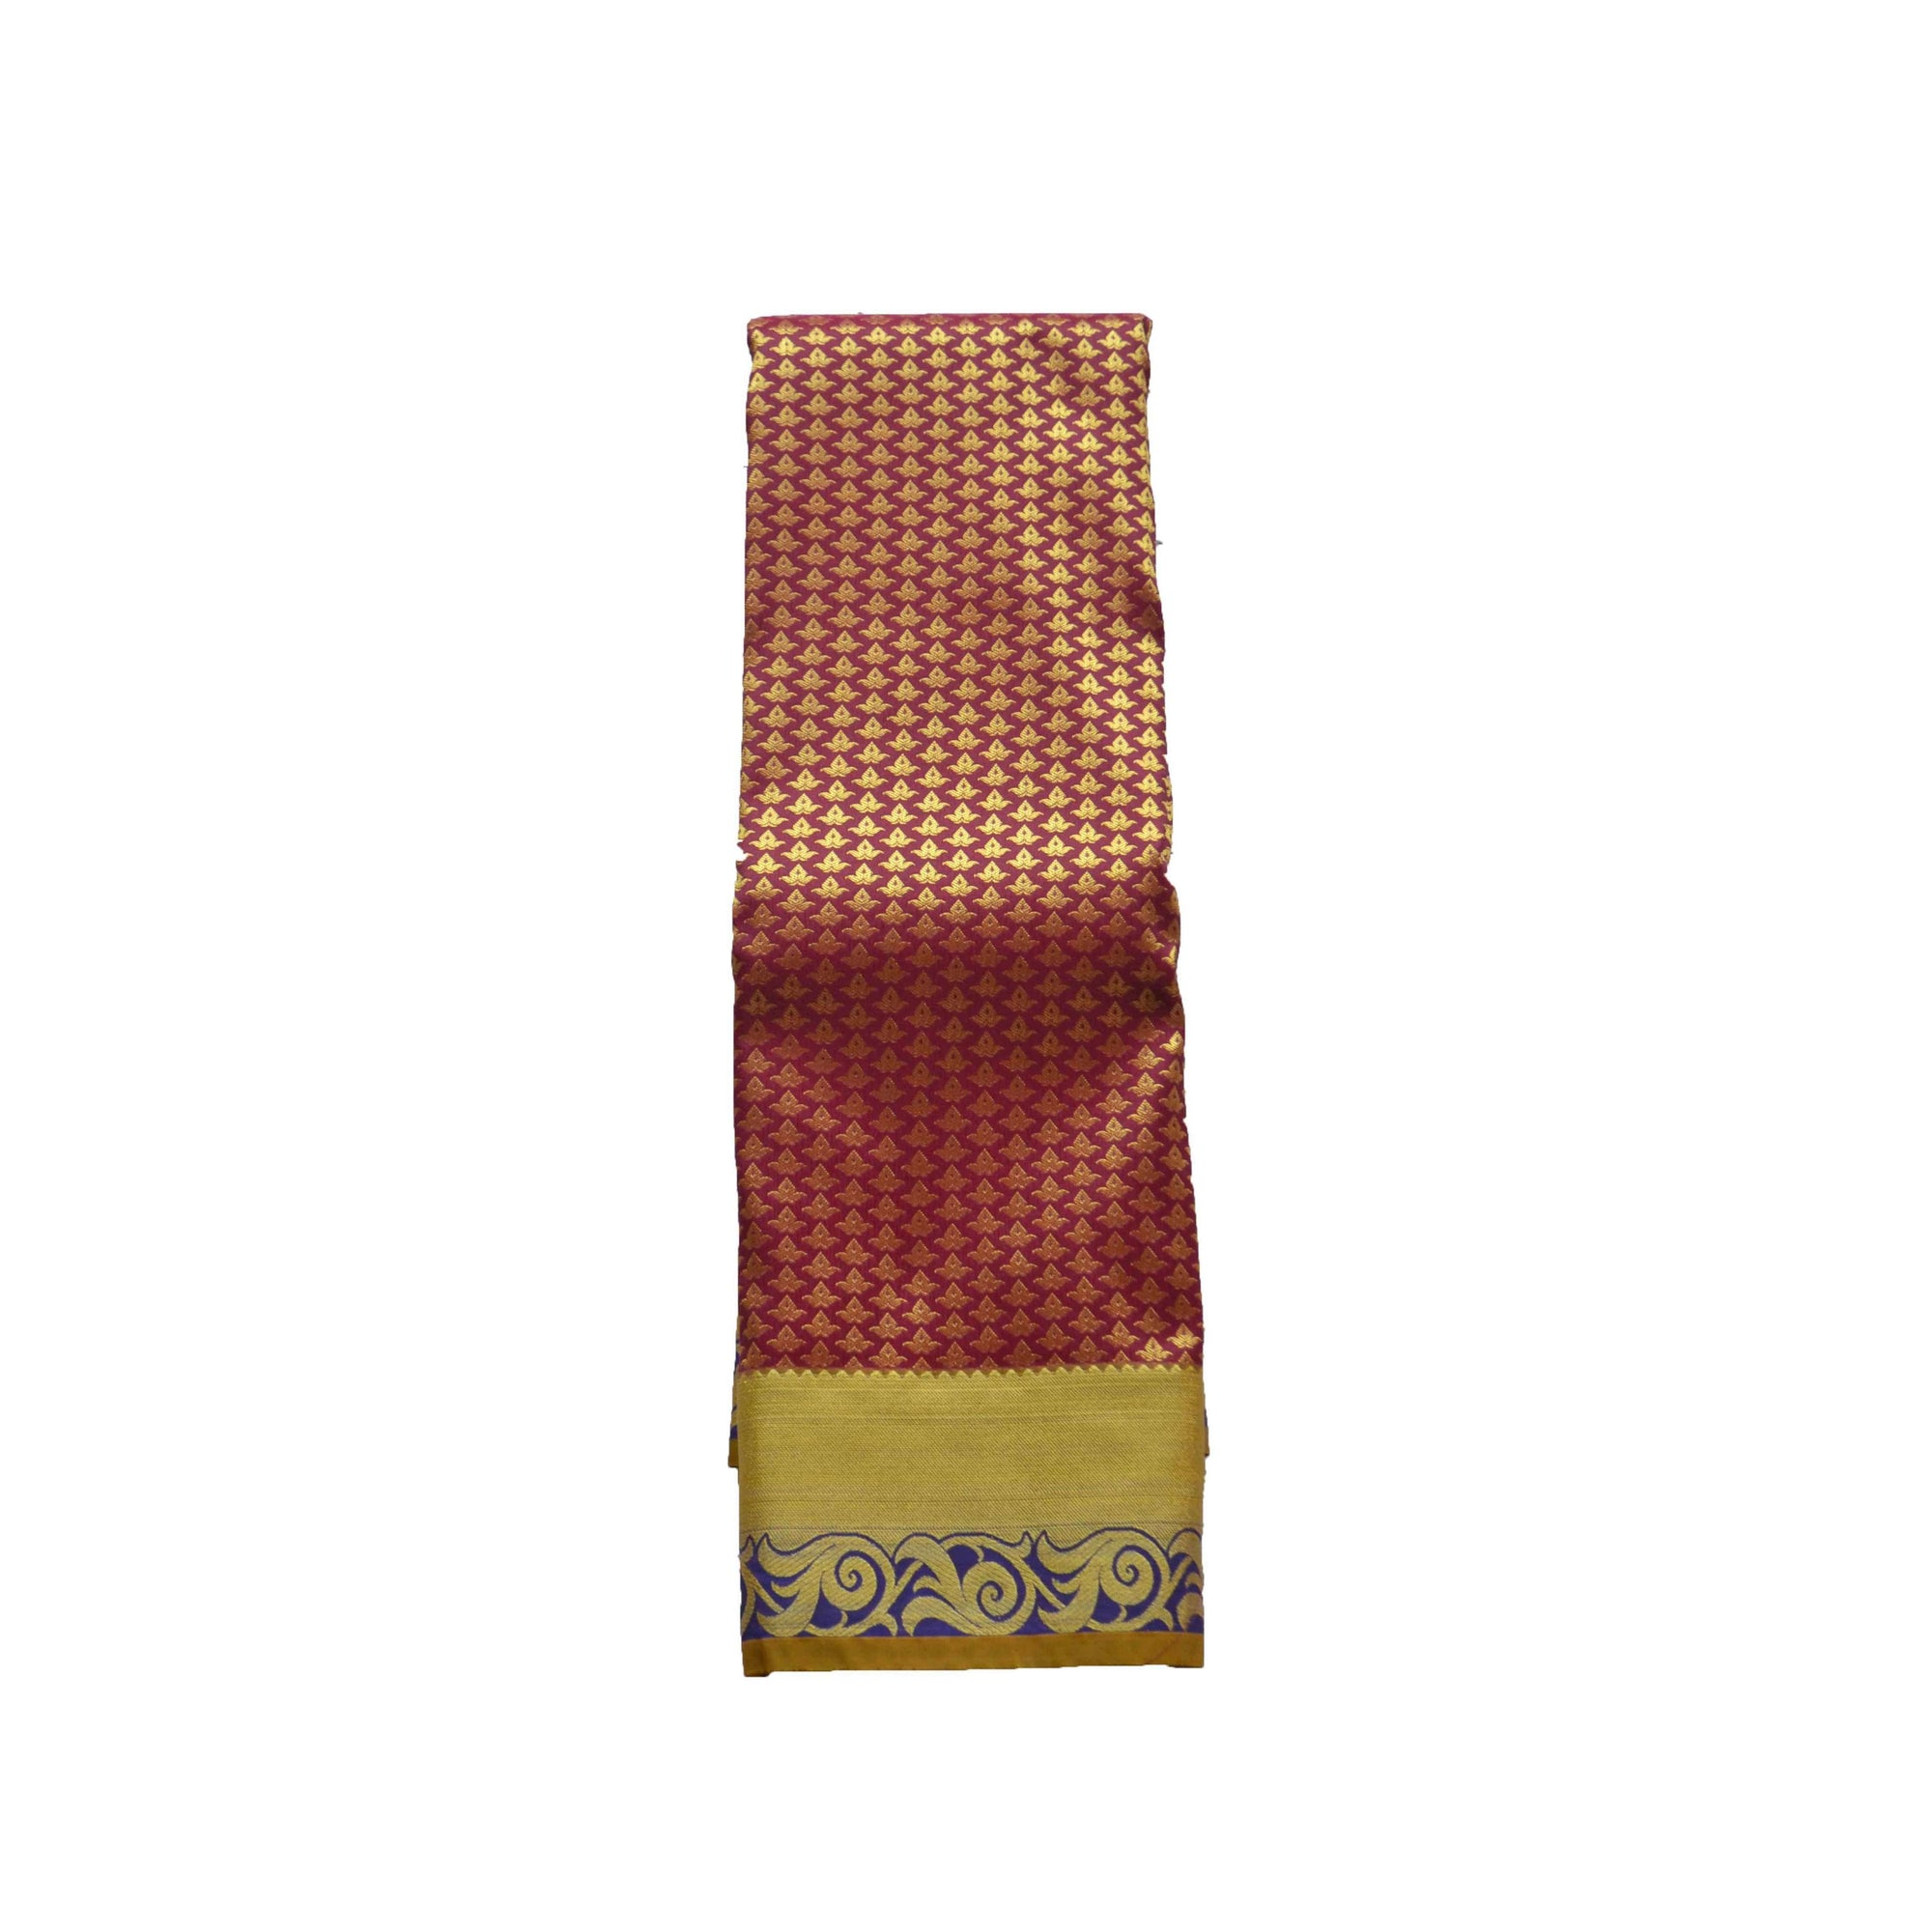 arars Women's kanchipuram kanjivaram pattu style art silk colour saree with blouse (353 MAROON)